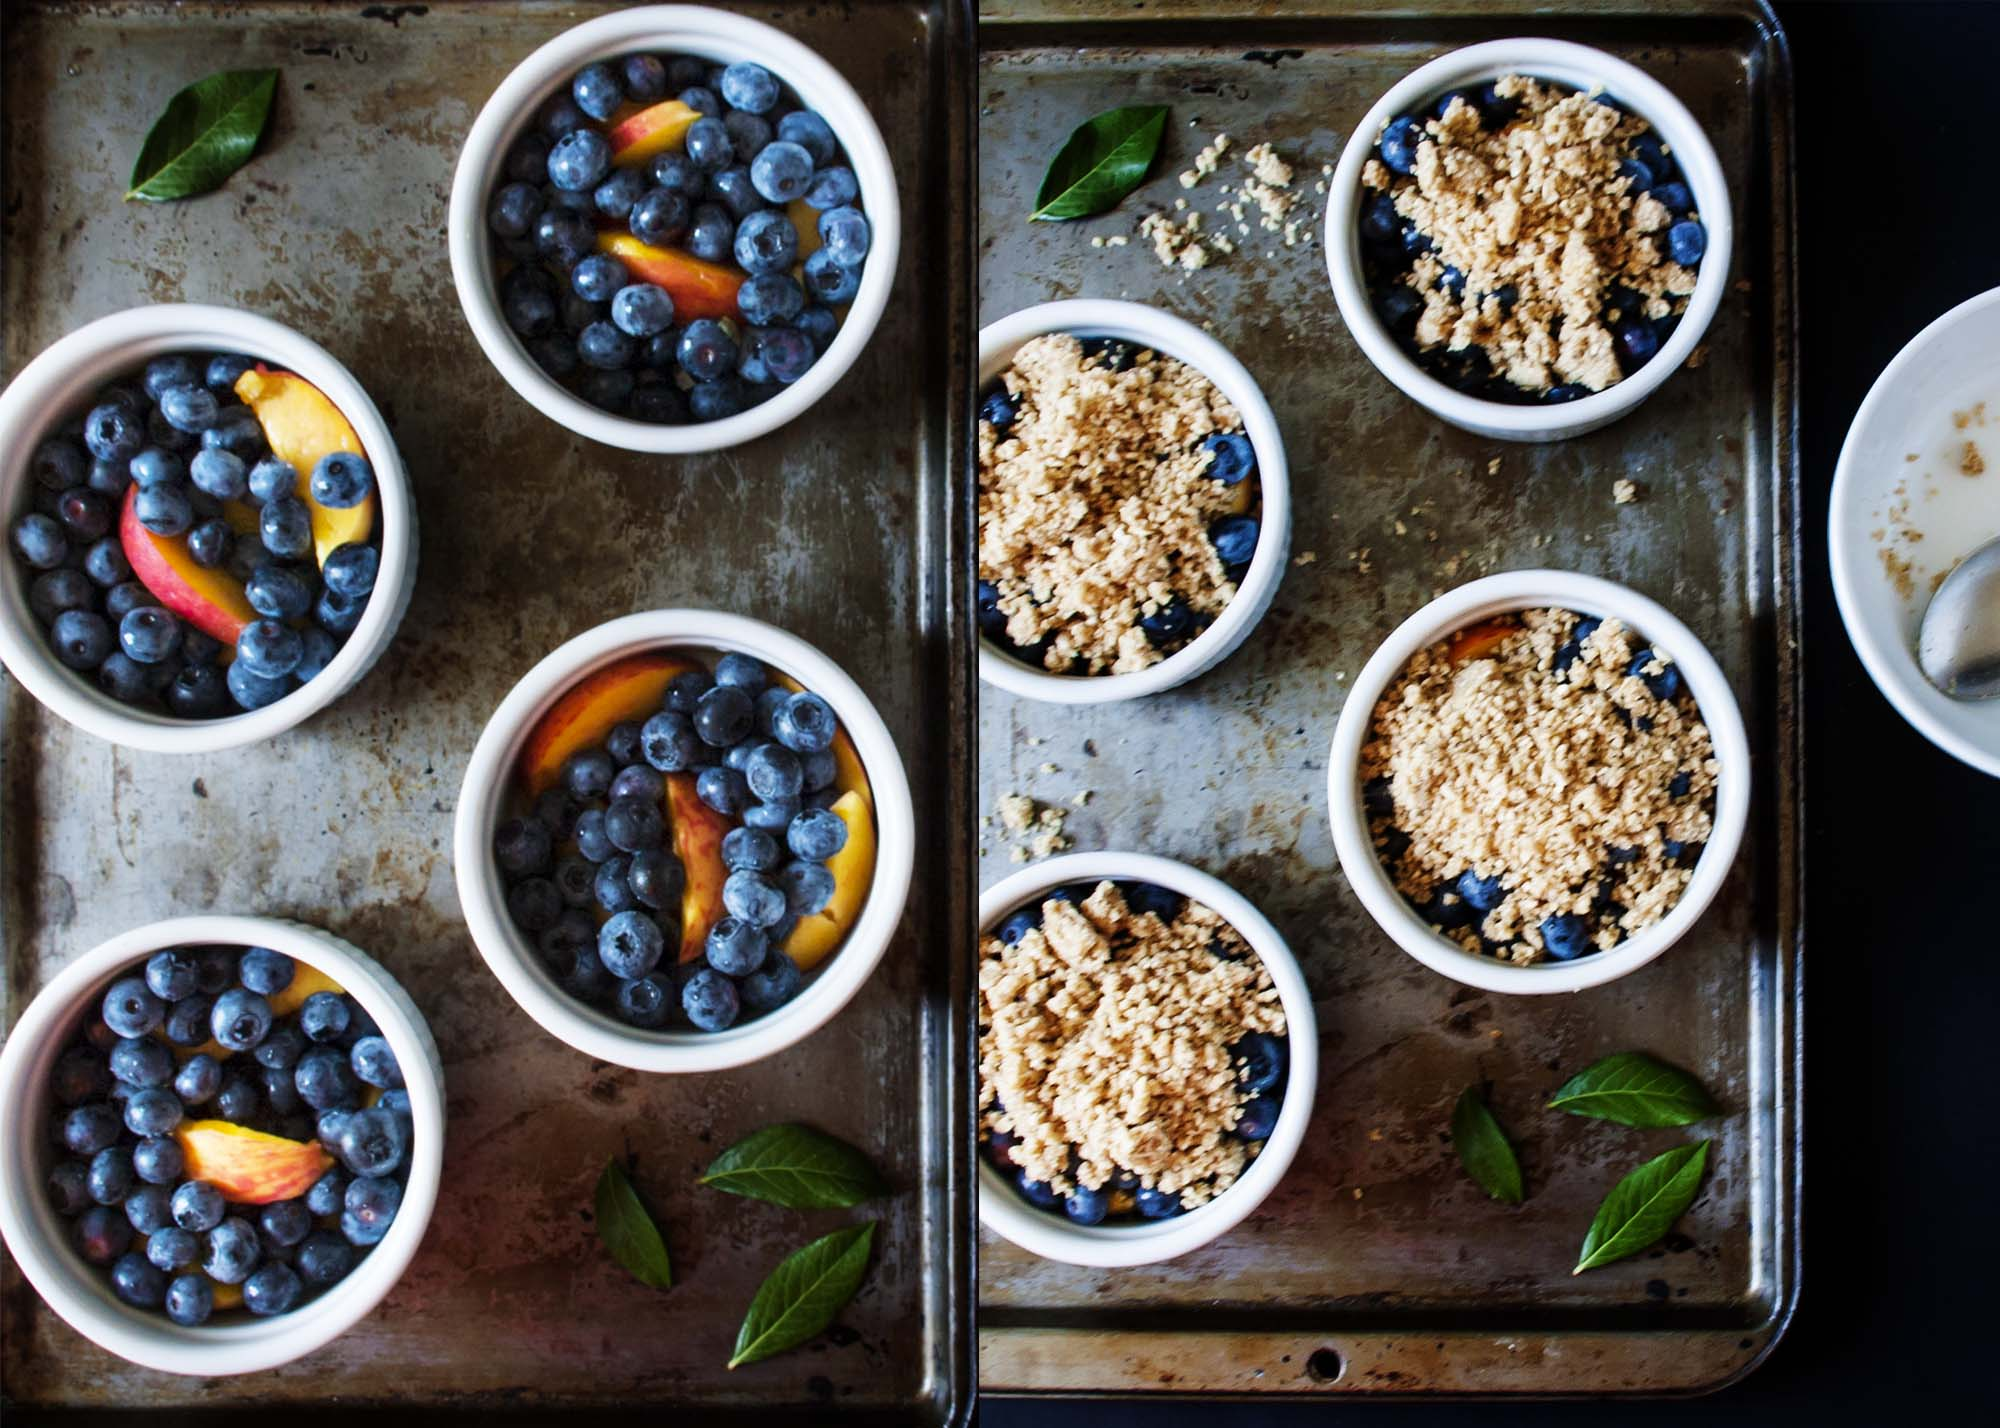 Gluten-Free Blueberry Peach Crisp - only 8 ingredients and 15 minutes prep and you're on your way to the perfect bowlful of sweet fruit and nutty topping | justalittlebitofbacon.com